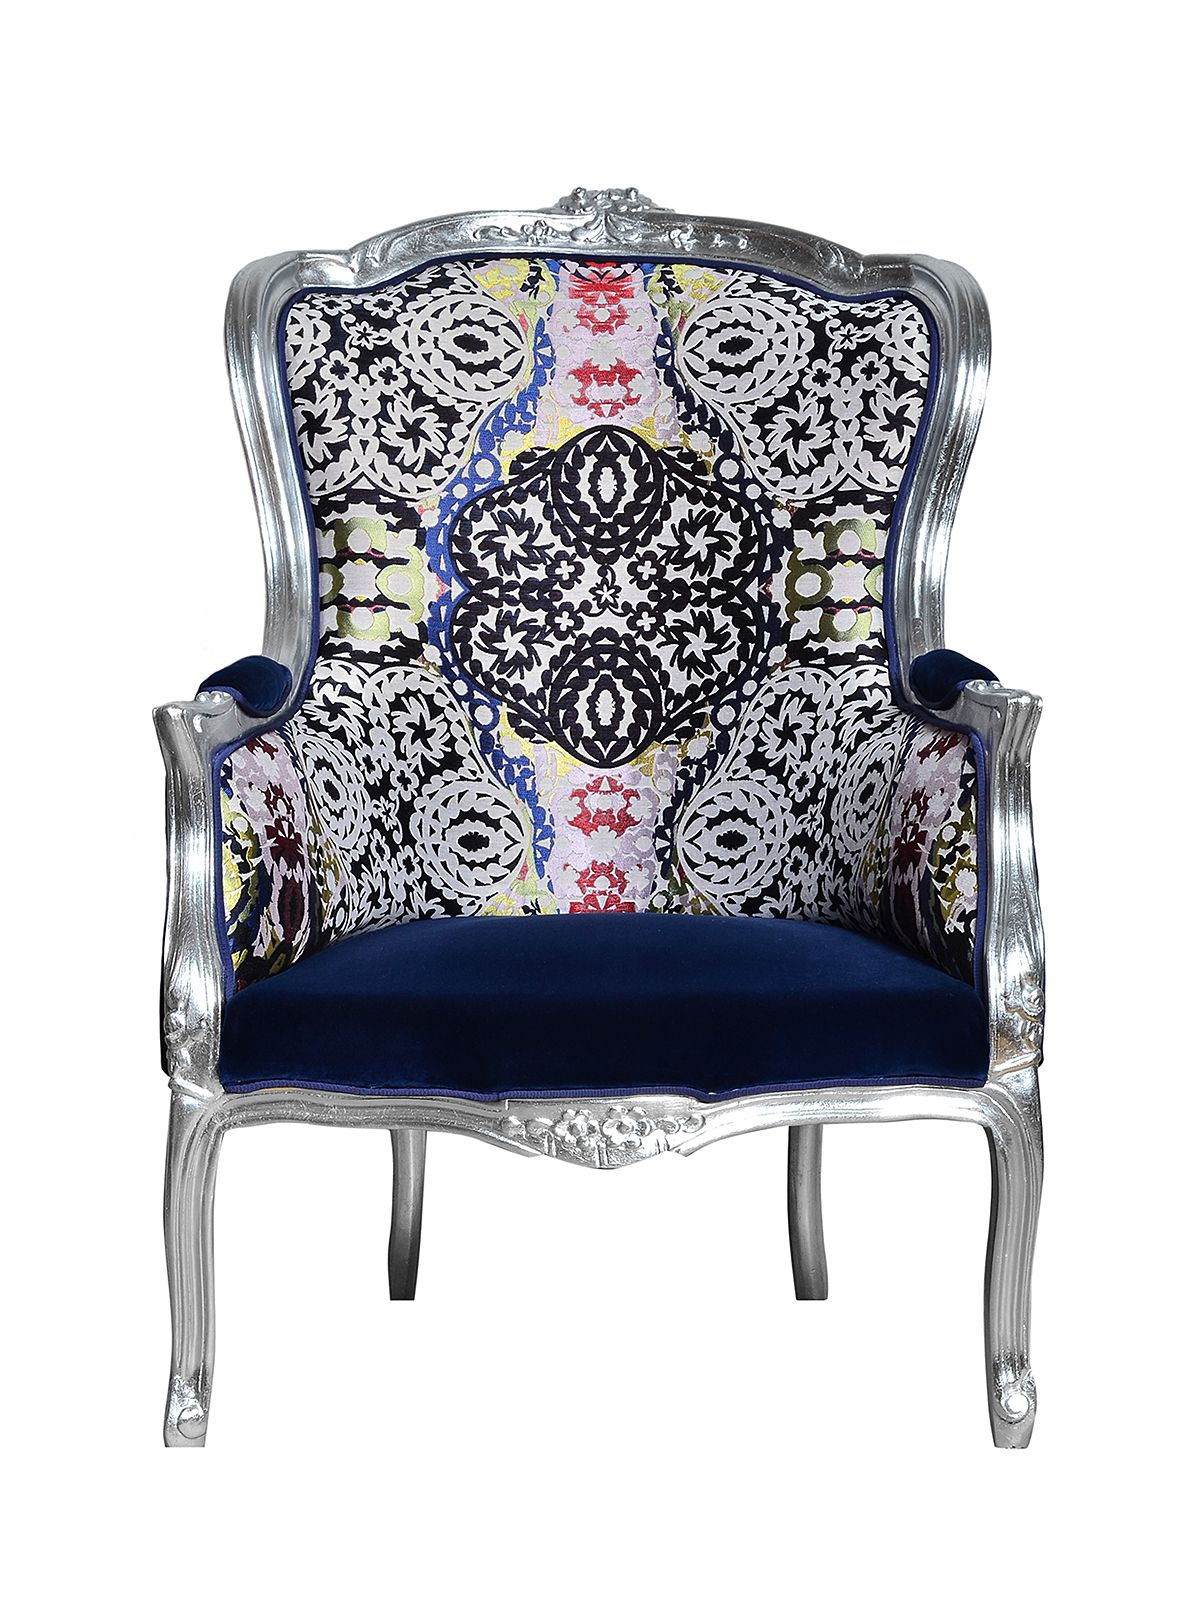 Armchair Upholstery Elegant Louis Xi Style Armchair Seat And Armrest Upholstery In